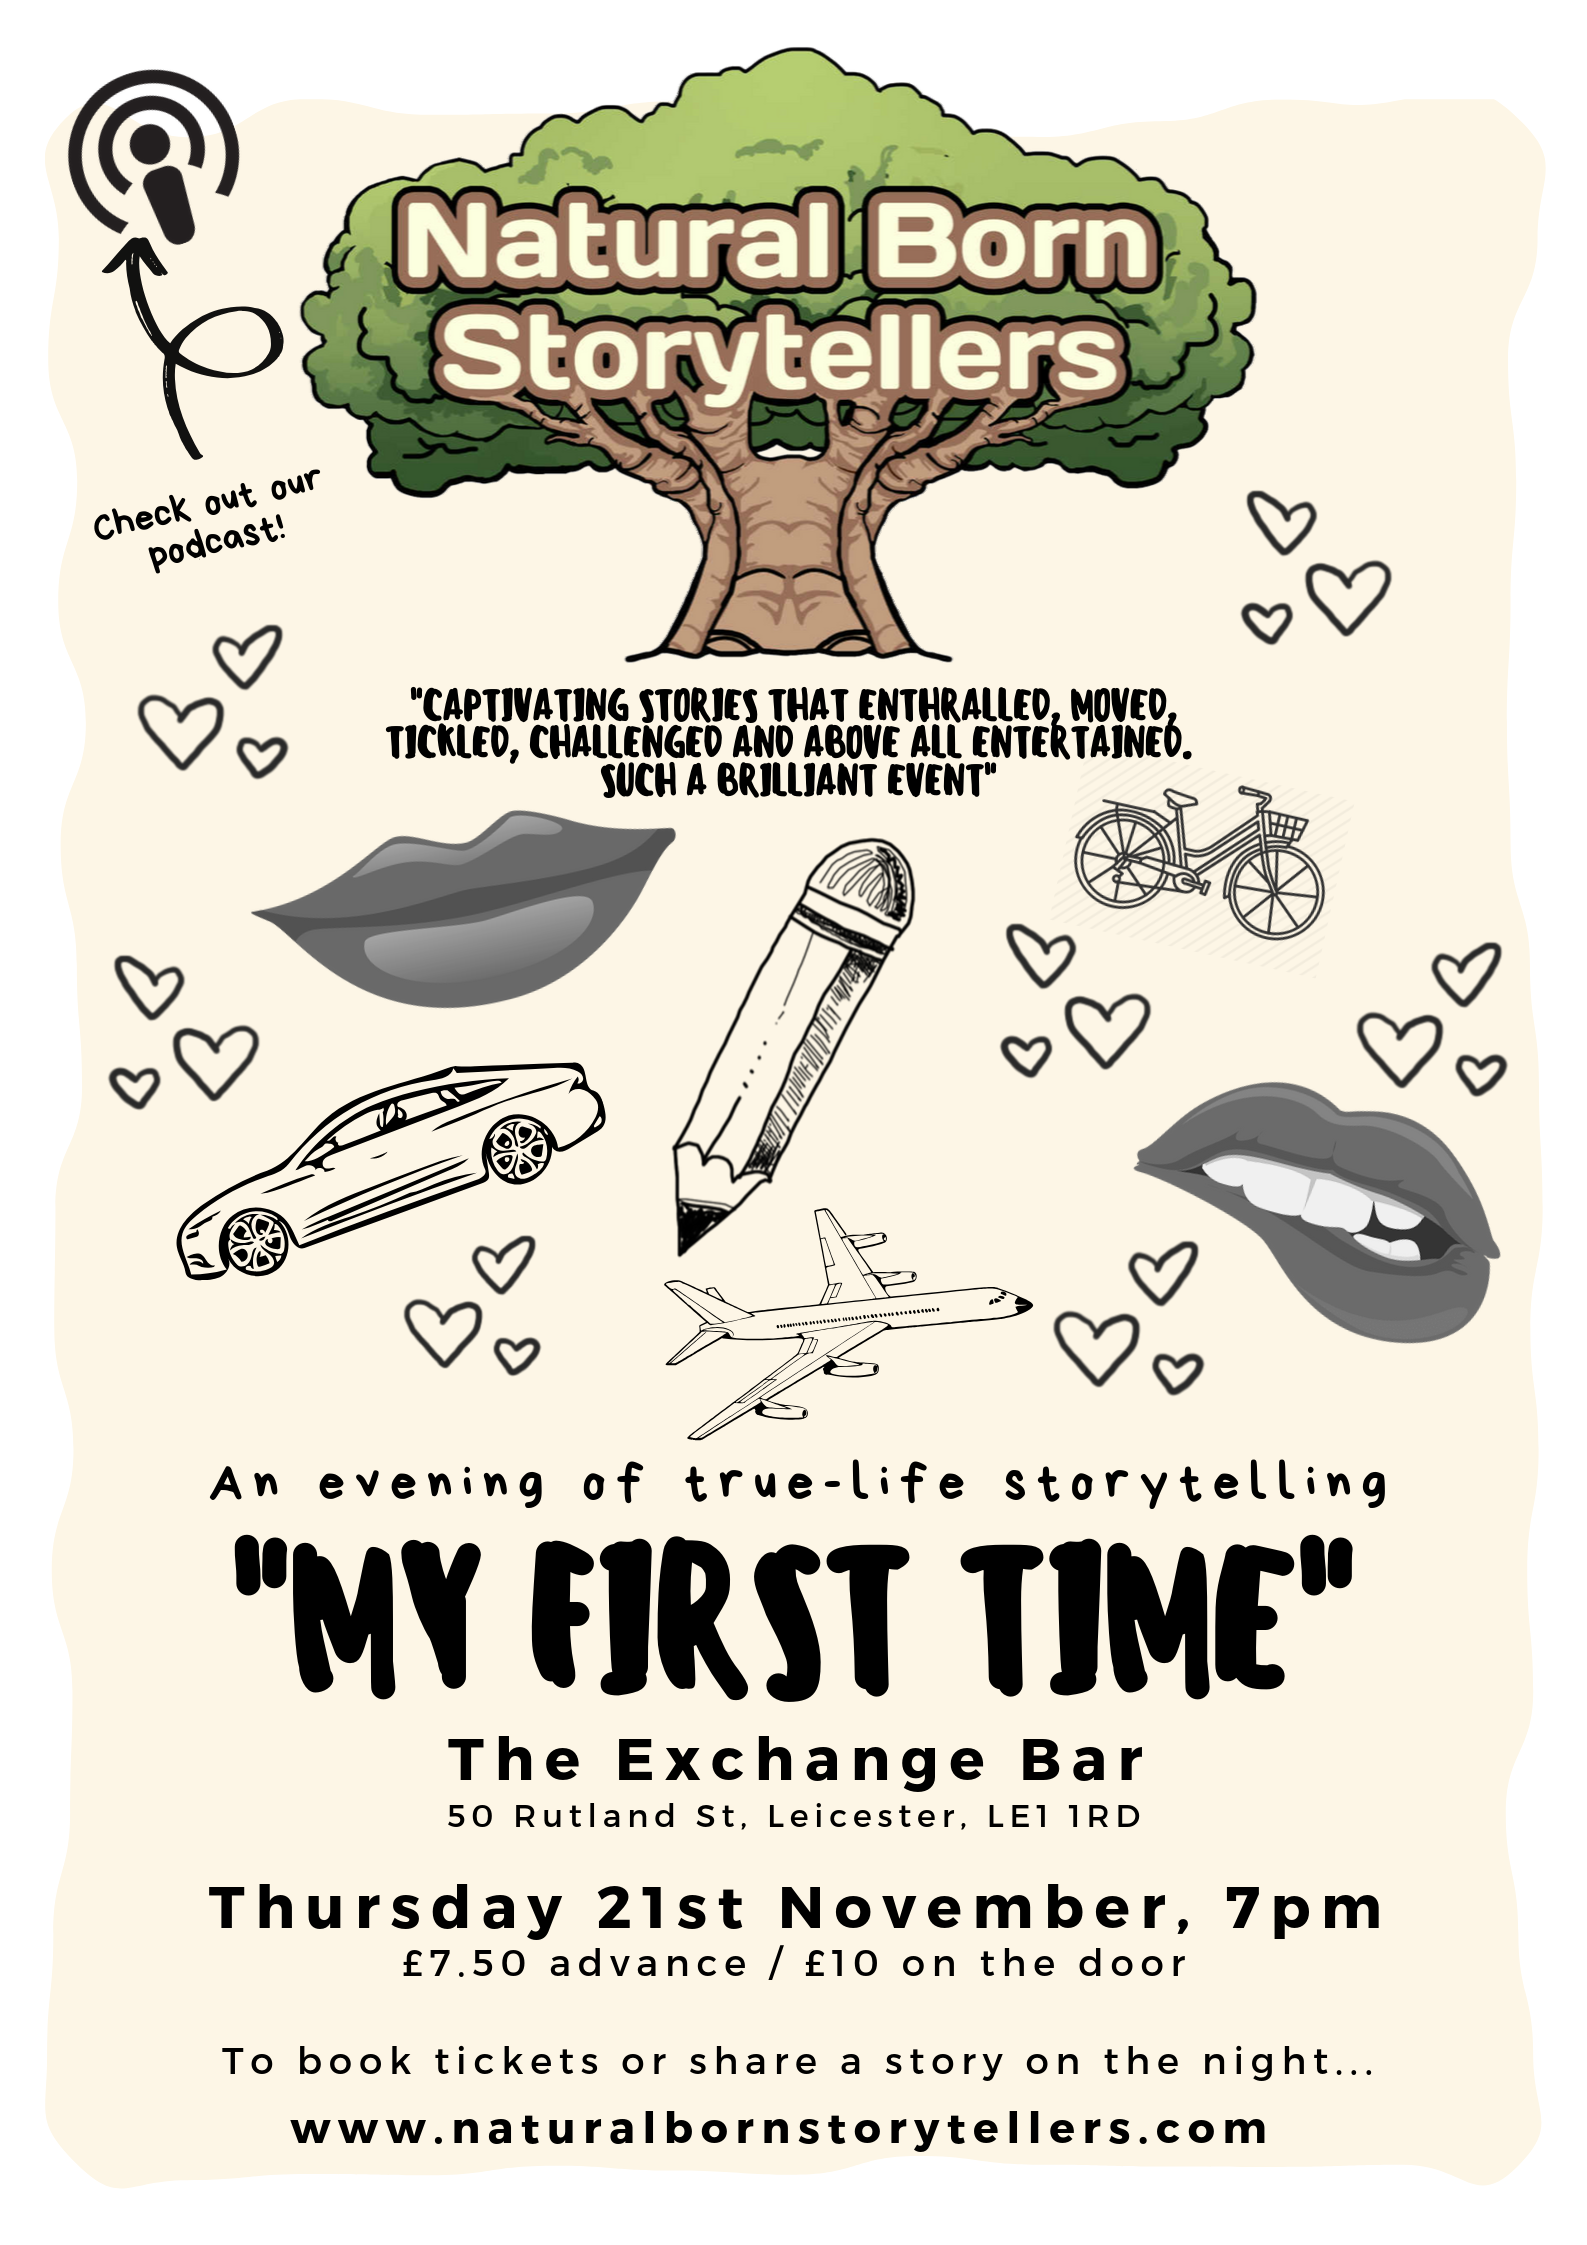 Natural Born Storytellers 'My First Time'